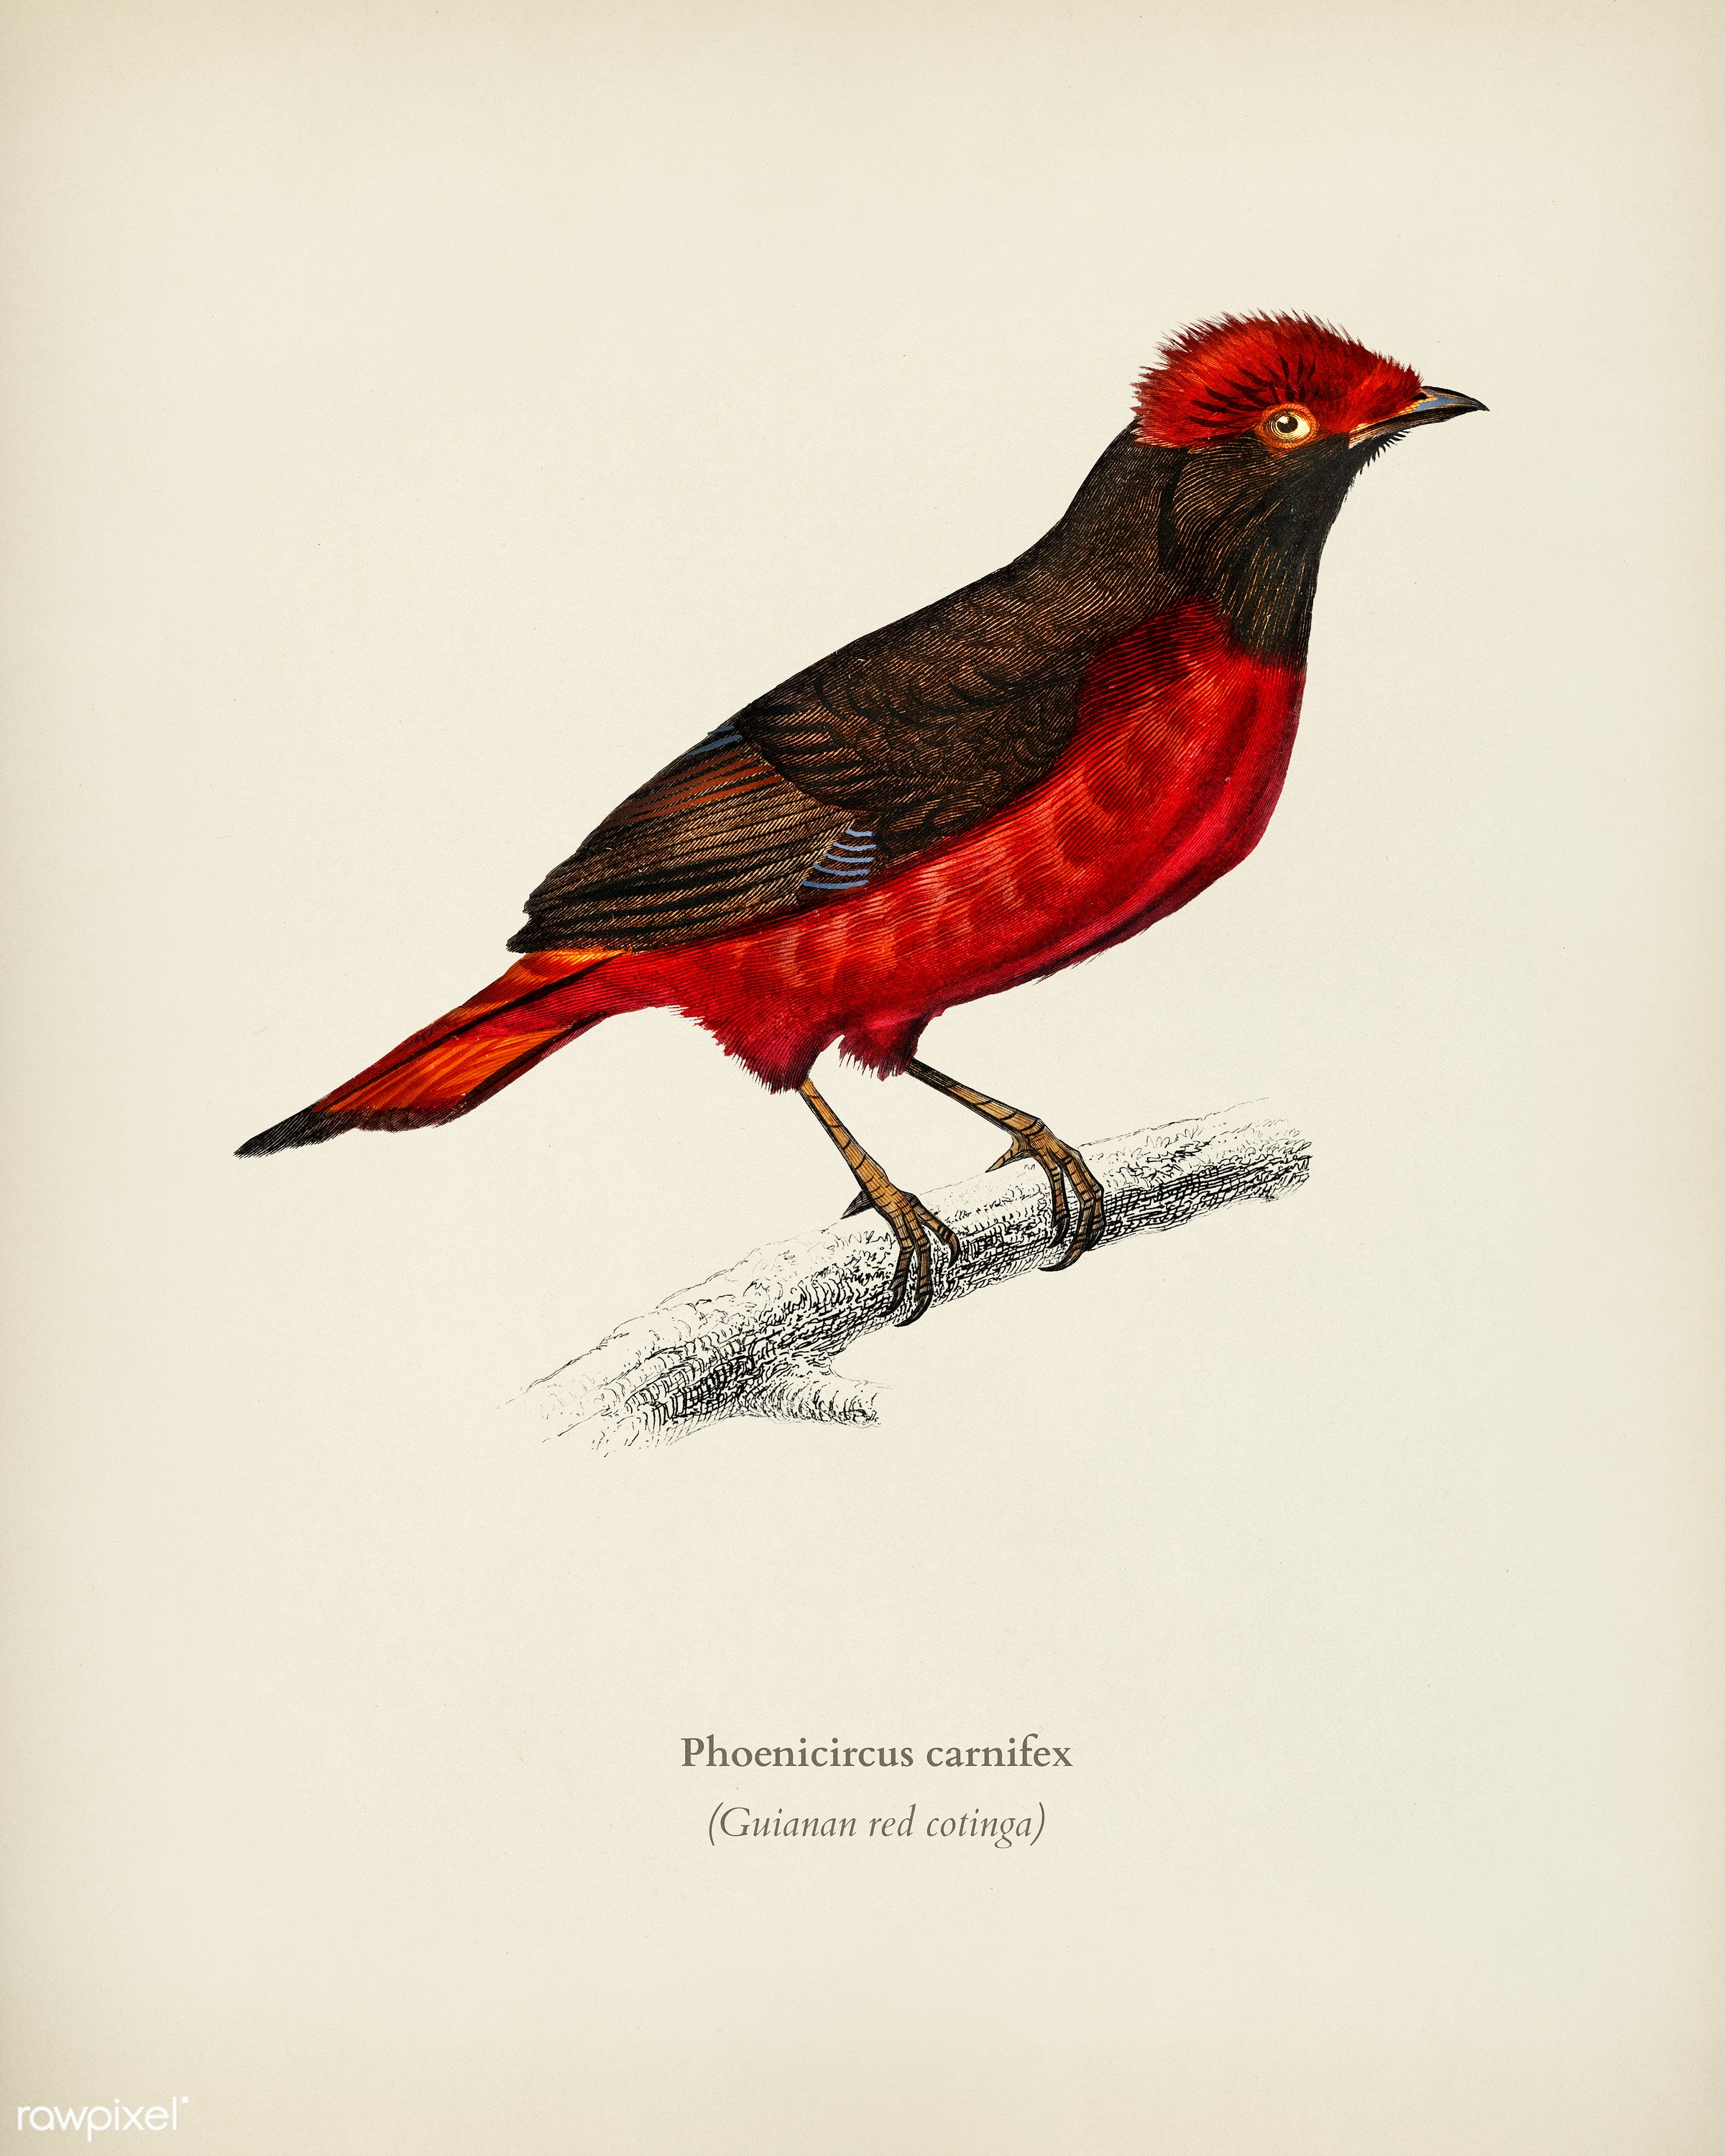 Guianan red cotinga (Phoenicircus carnifex) illustrated by Charles Dessalines D' Orbigny (1806-1876). Digitally enhanced...